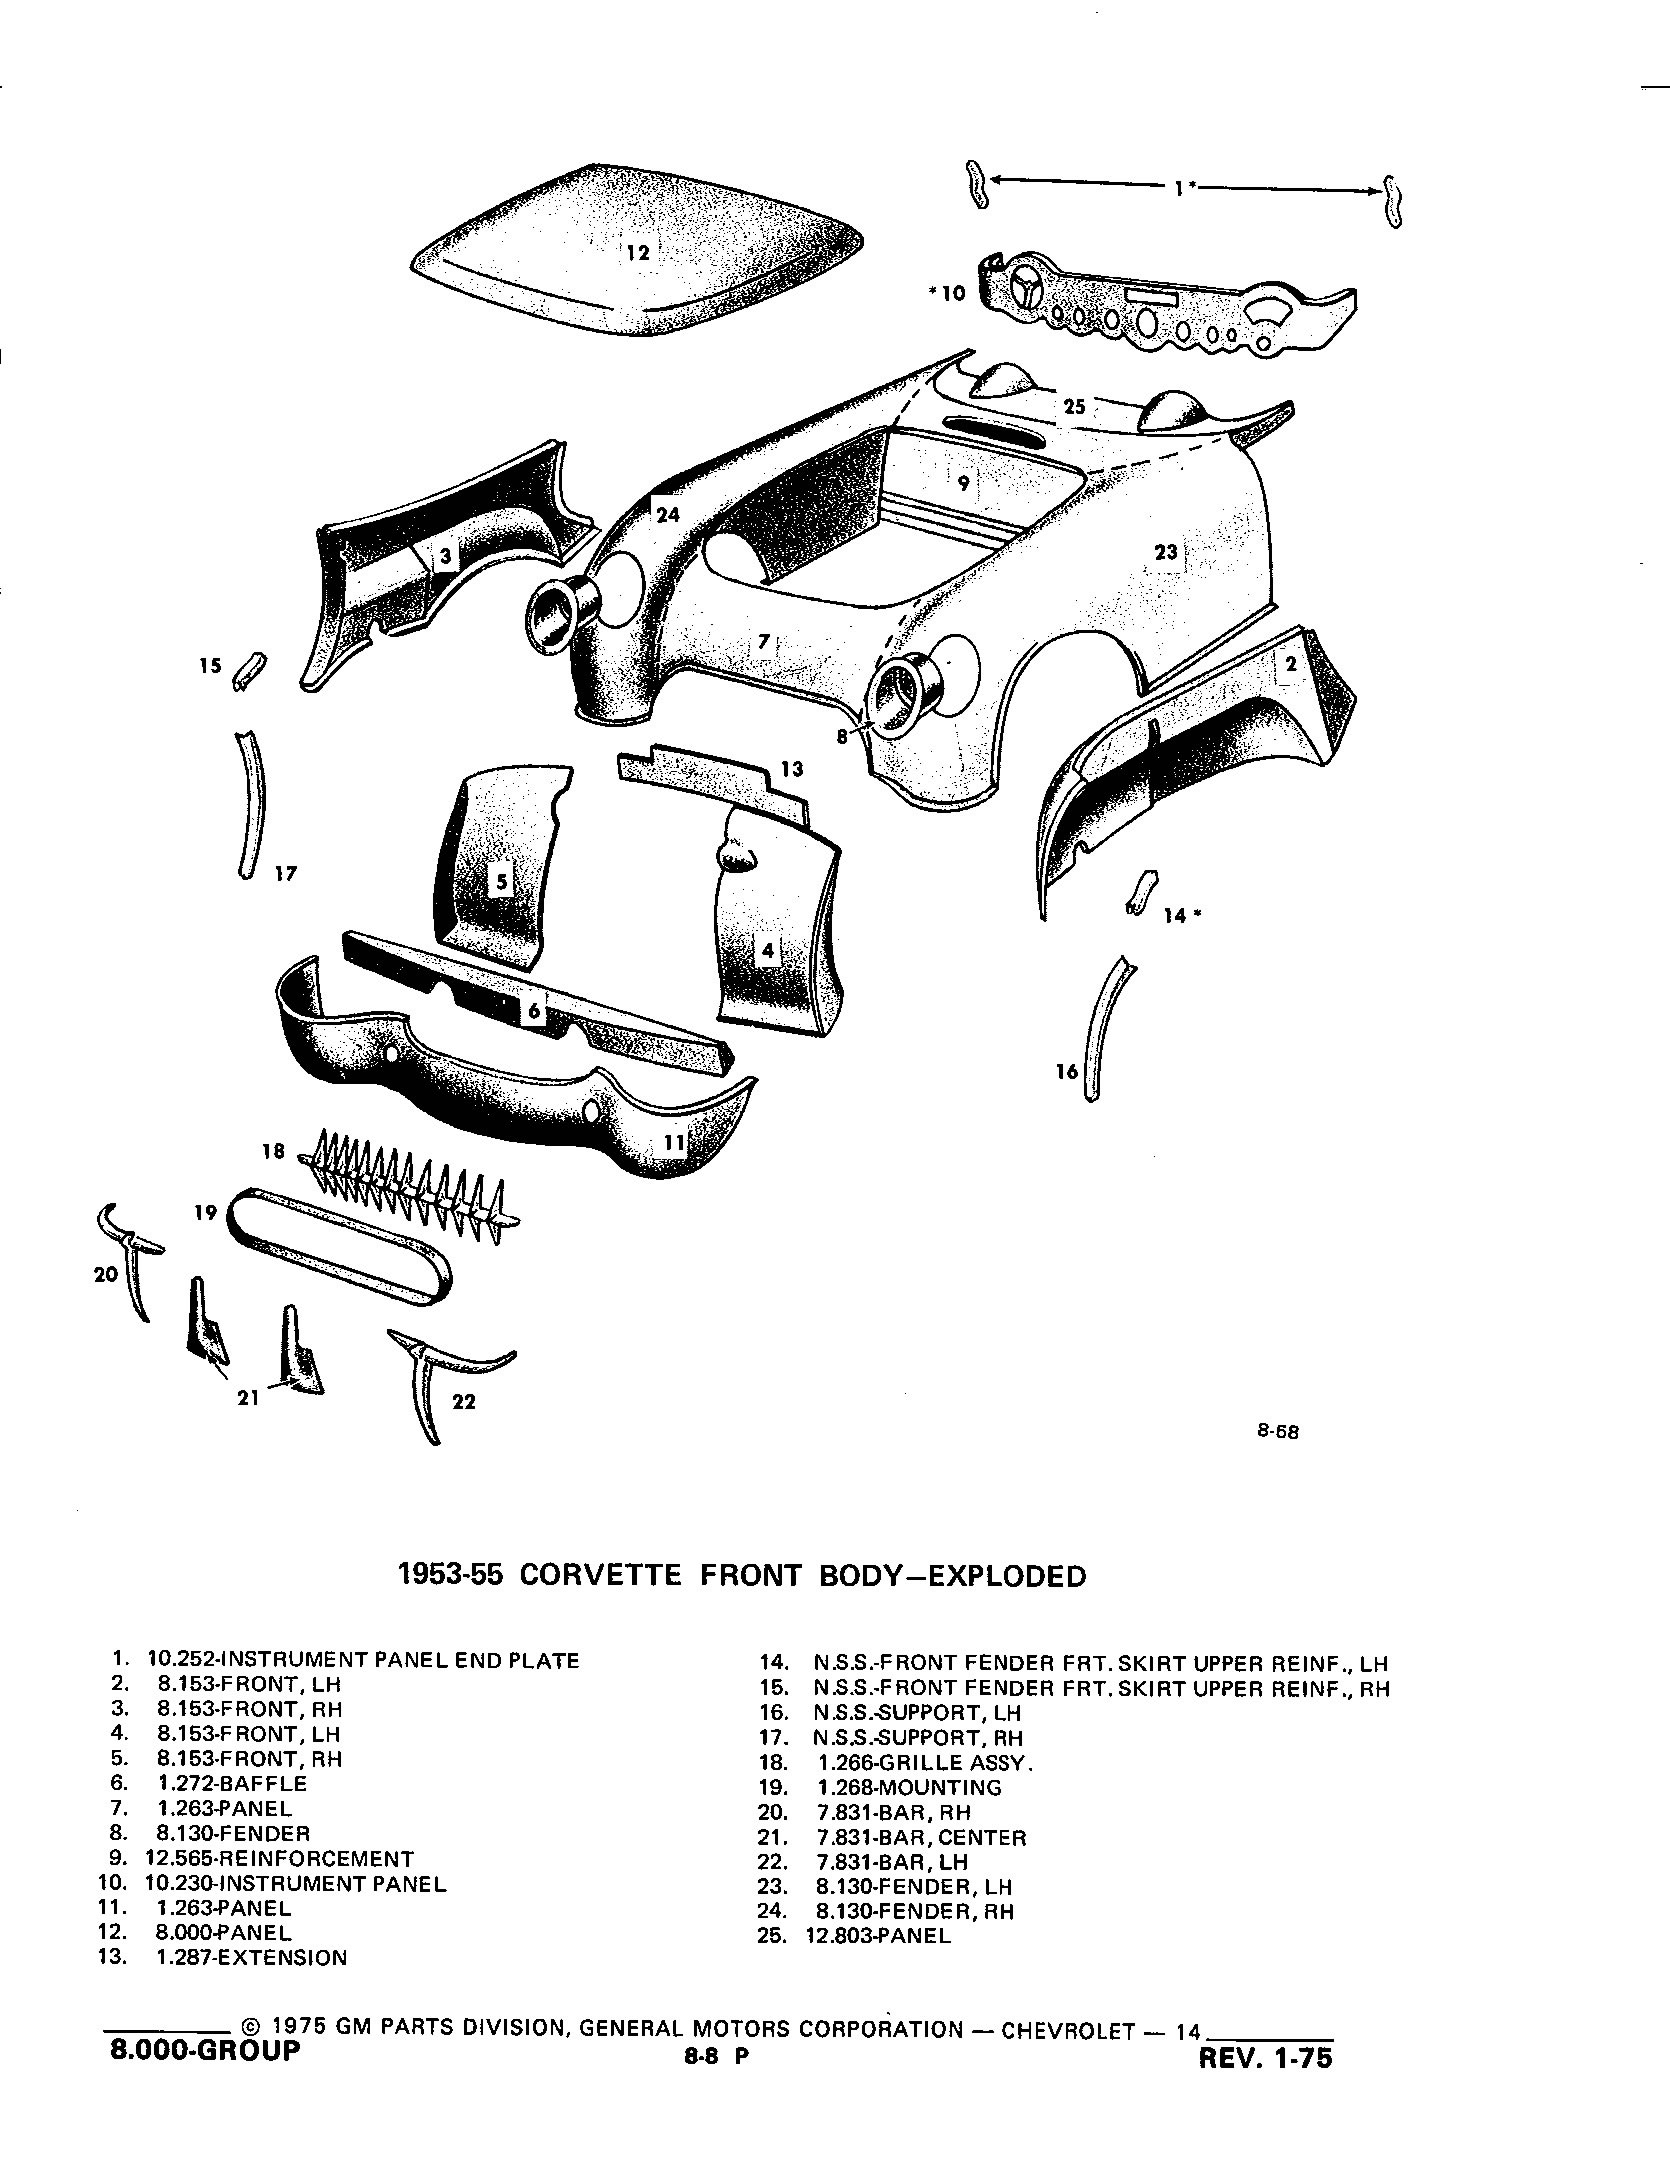 Group8 Sheet Metal Heater / 1953-1973 Corvette Parts and